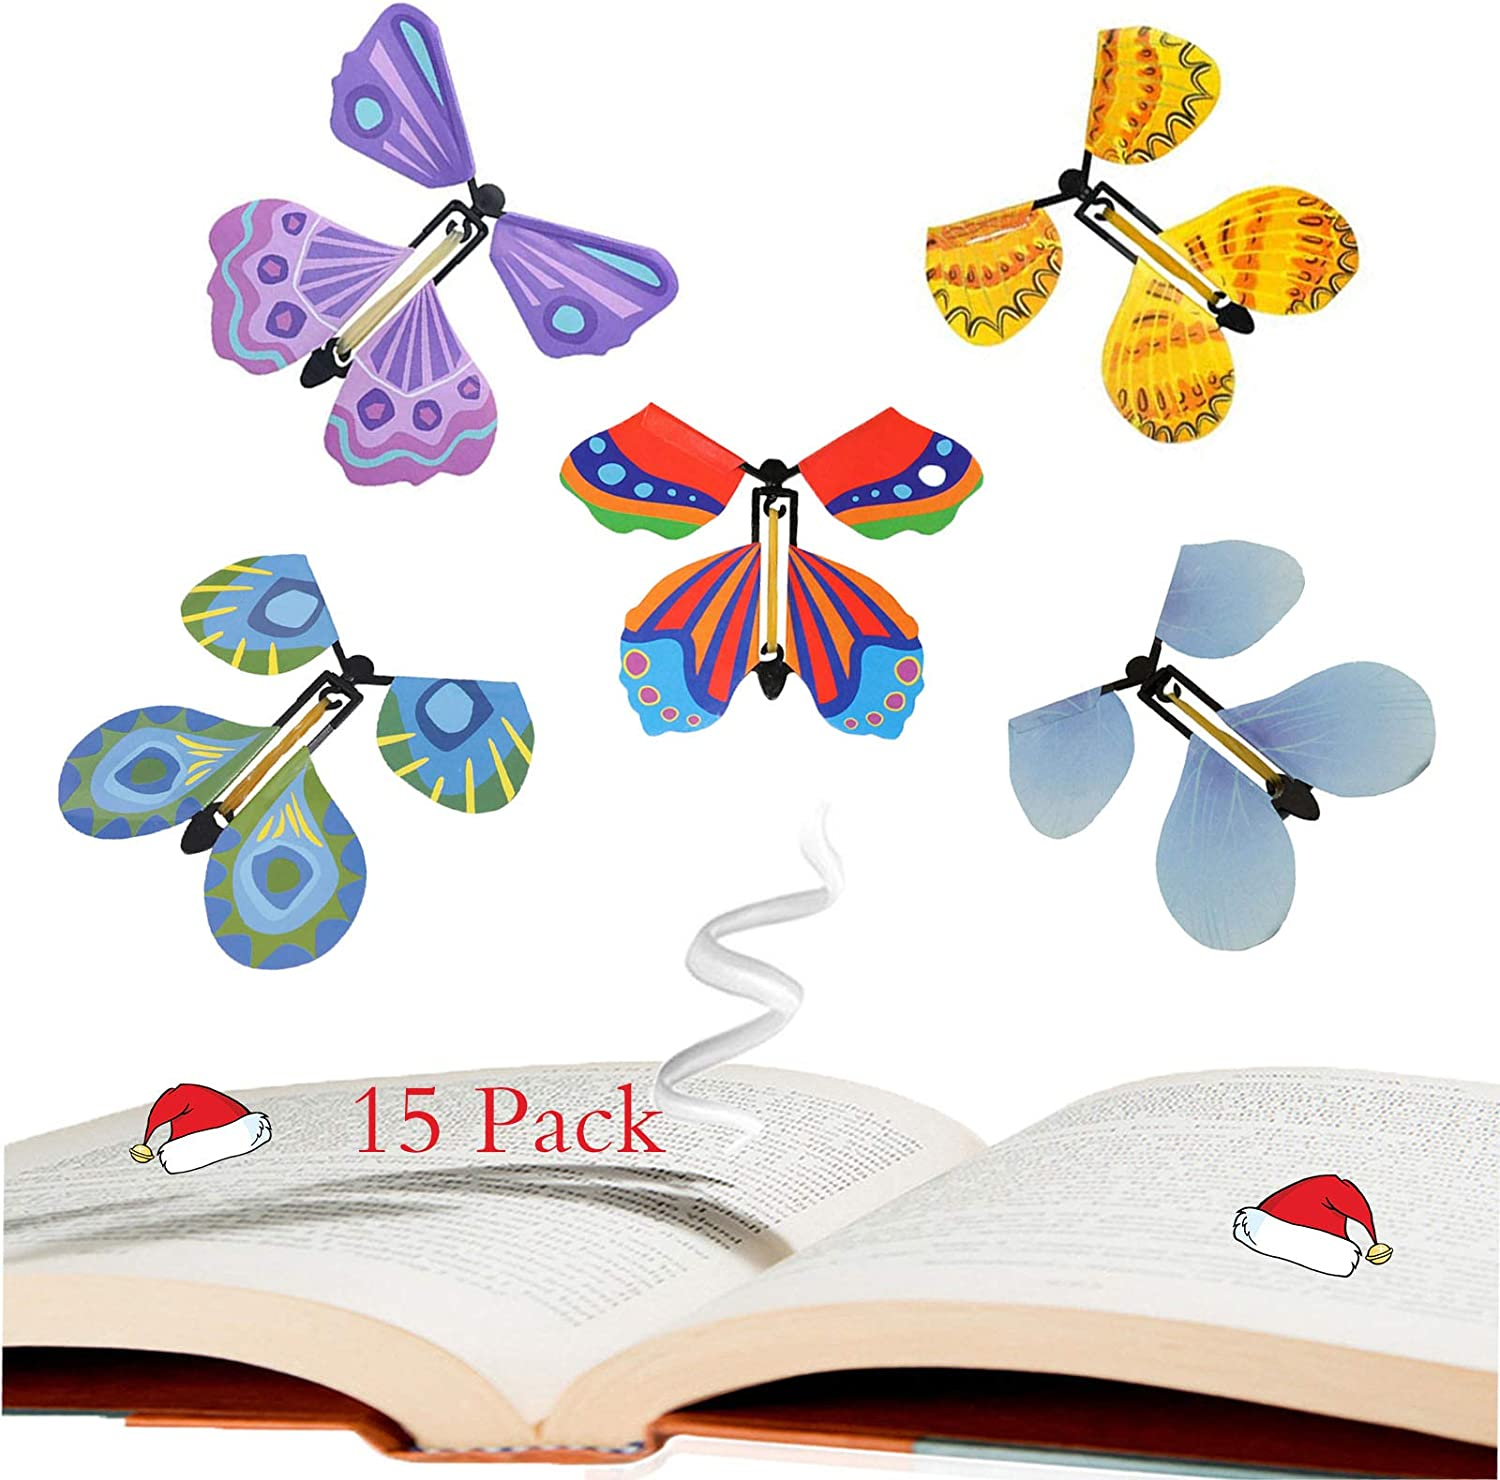 15 Pack JUNBESTN Magic Flying Butterflies Toys 15 Pack Gift for Kids Stocking Stuffers Halloween Wind Up Toys Surprise Gift Party Playing